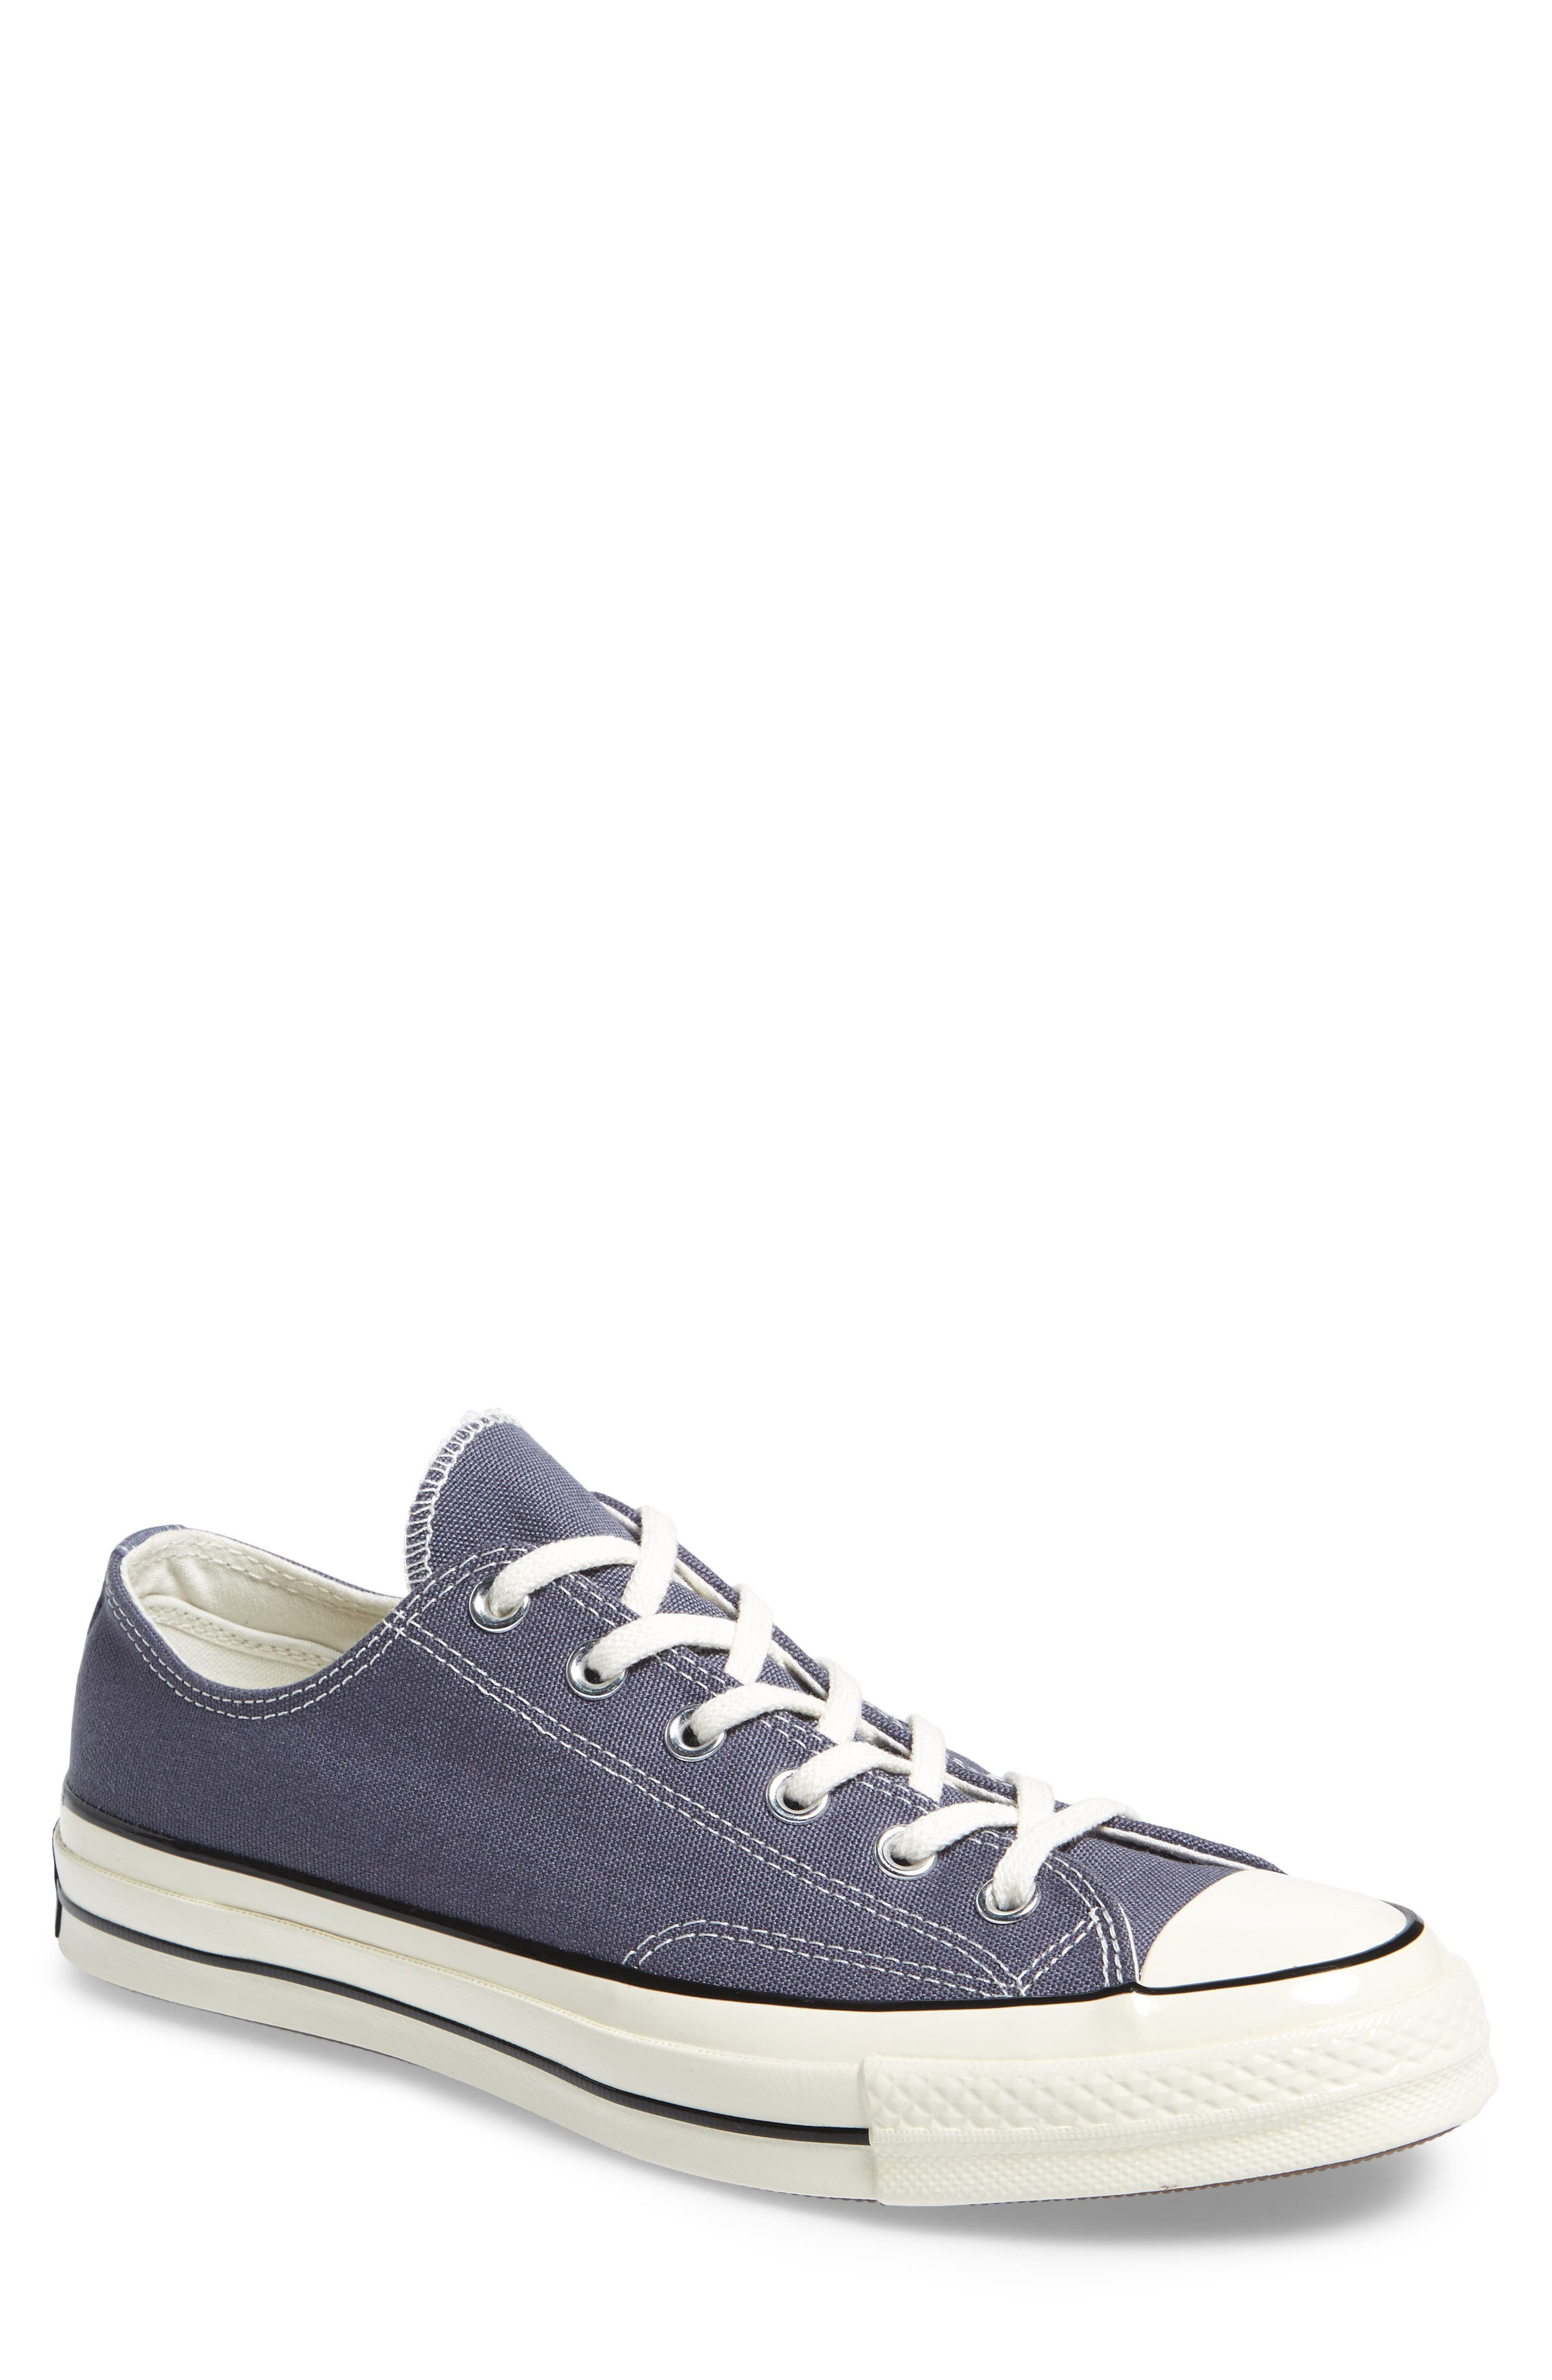 Chuck Taylor<sup>®</sup> All Star<sup>®</sup> 70 Heritage Sneaker,                         Main,                         color, Light Carbon Canvas